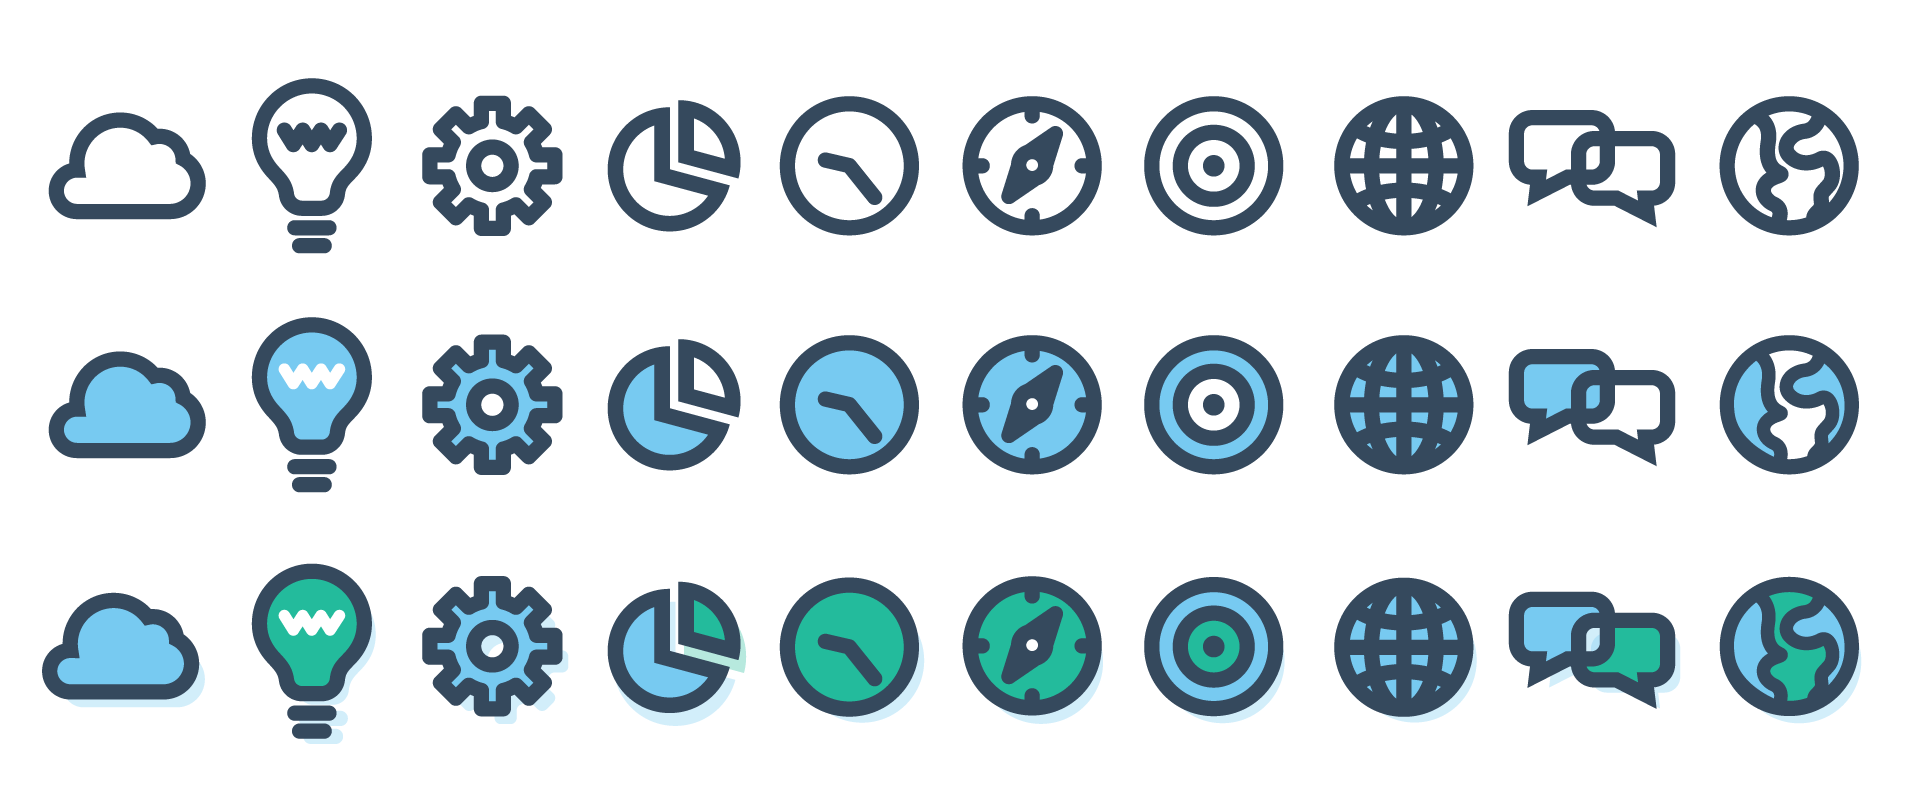 ChatWisdom icons